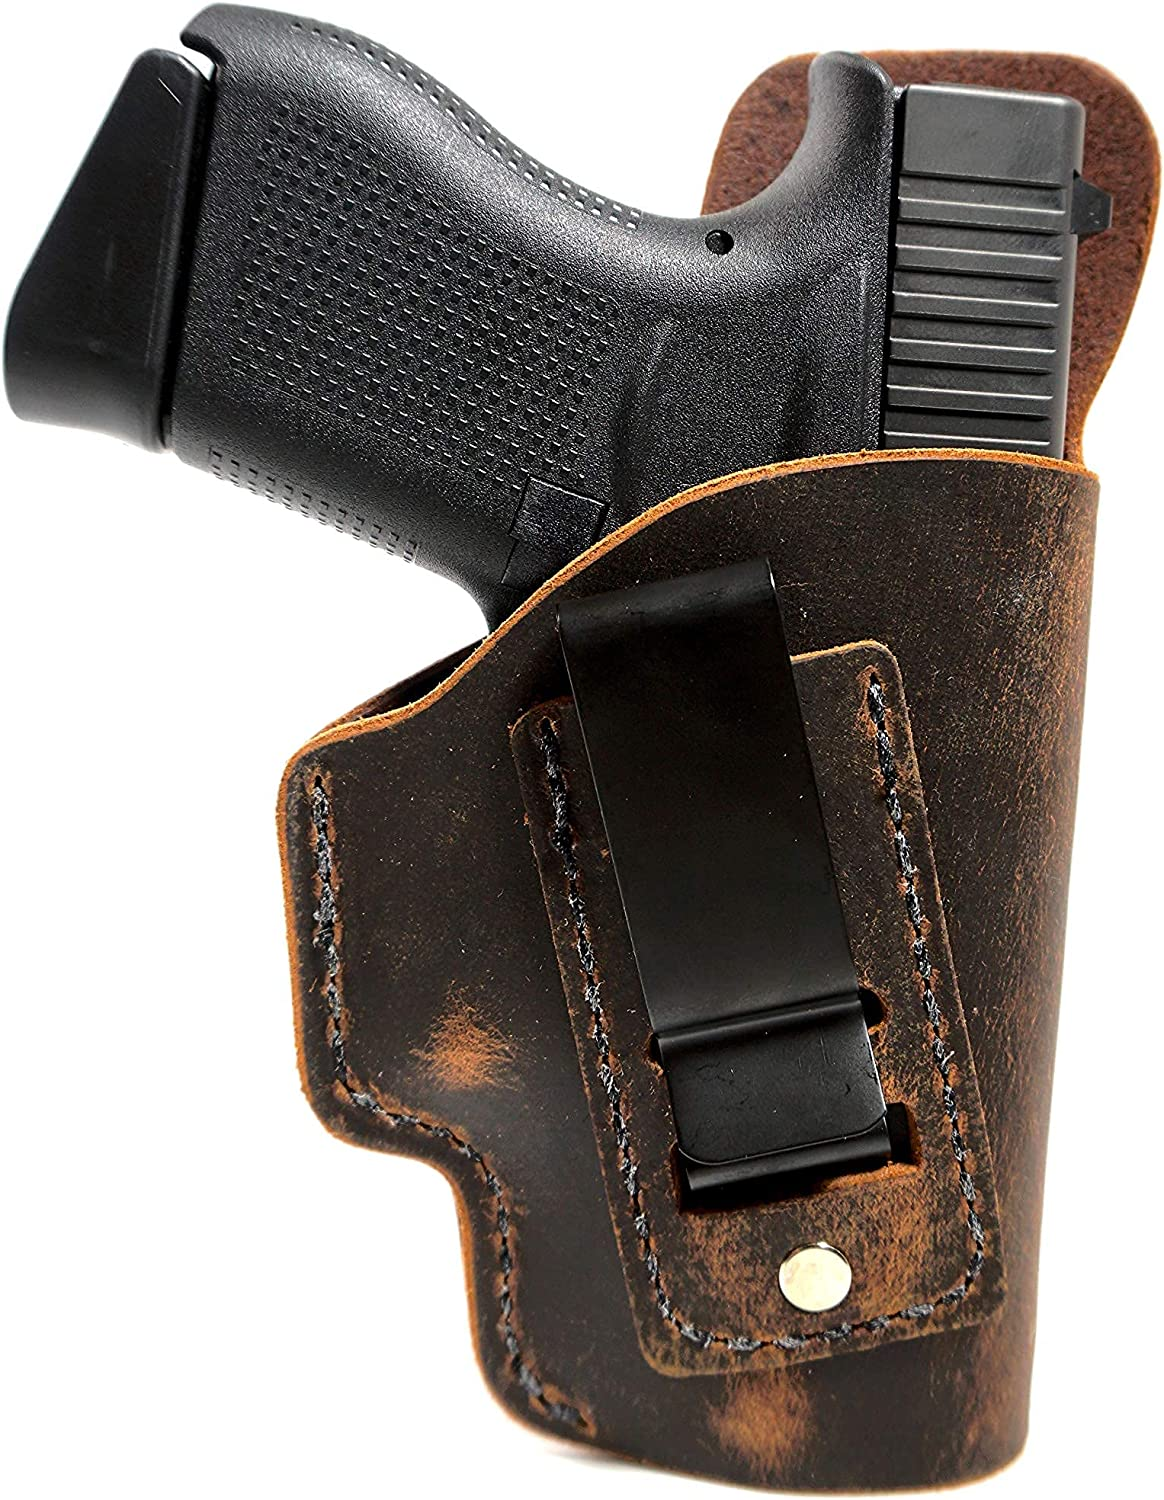 Inside The Waistband Leather Holster - fo USA Made sold out Designed in low-pricing